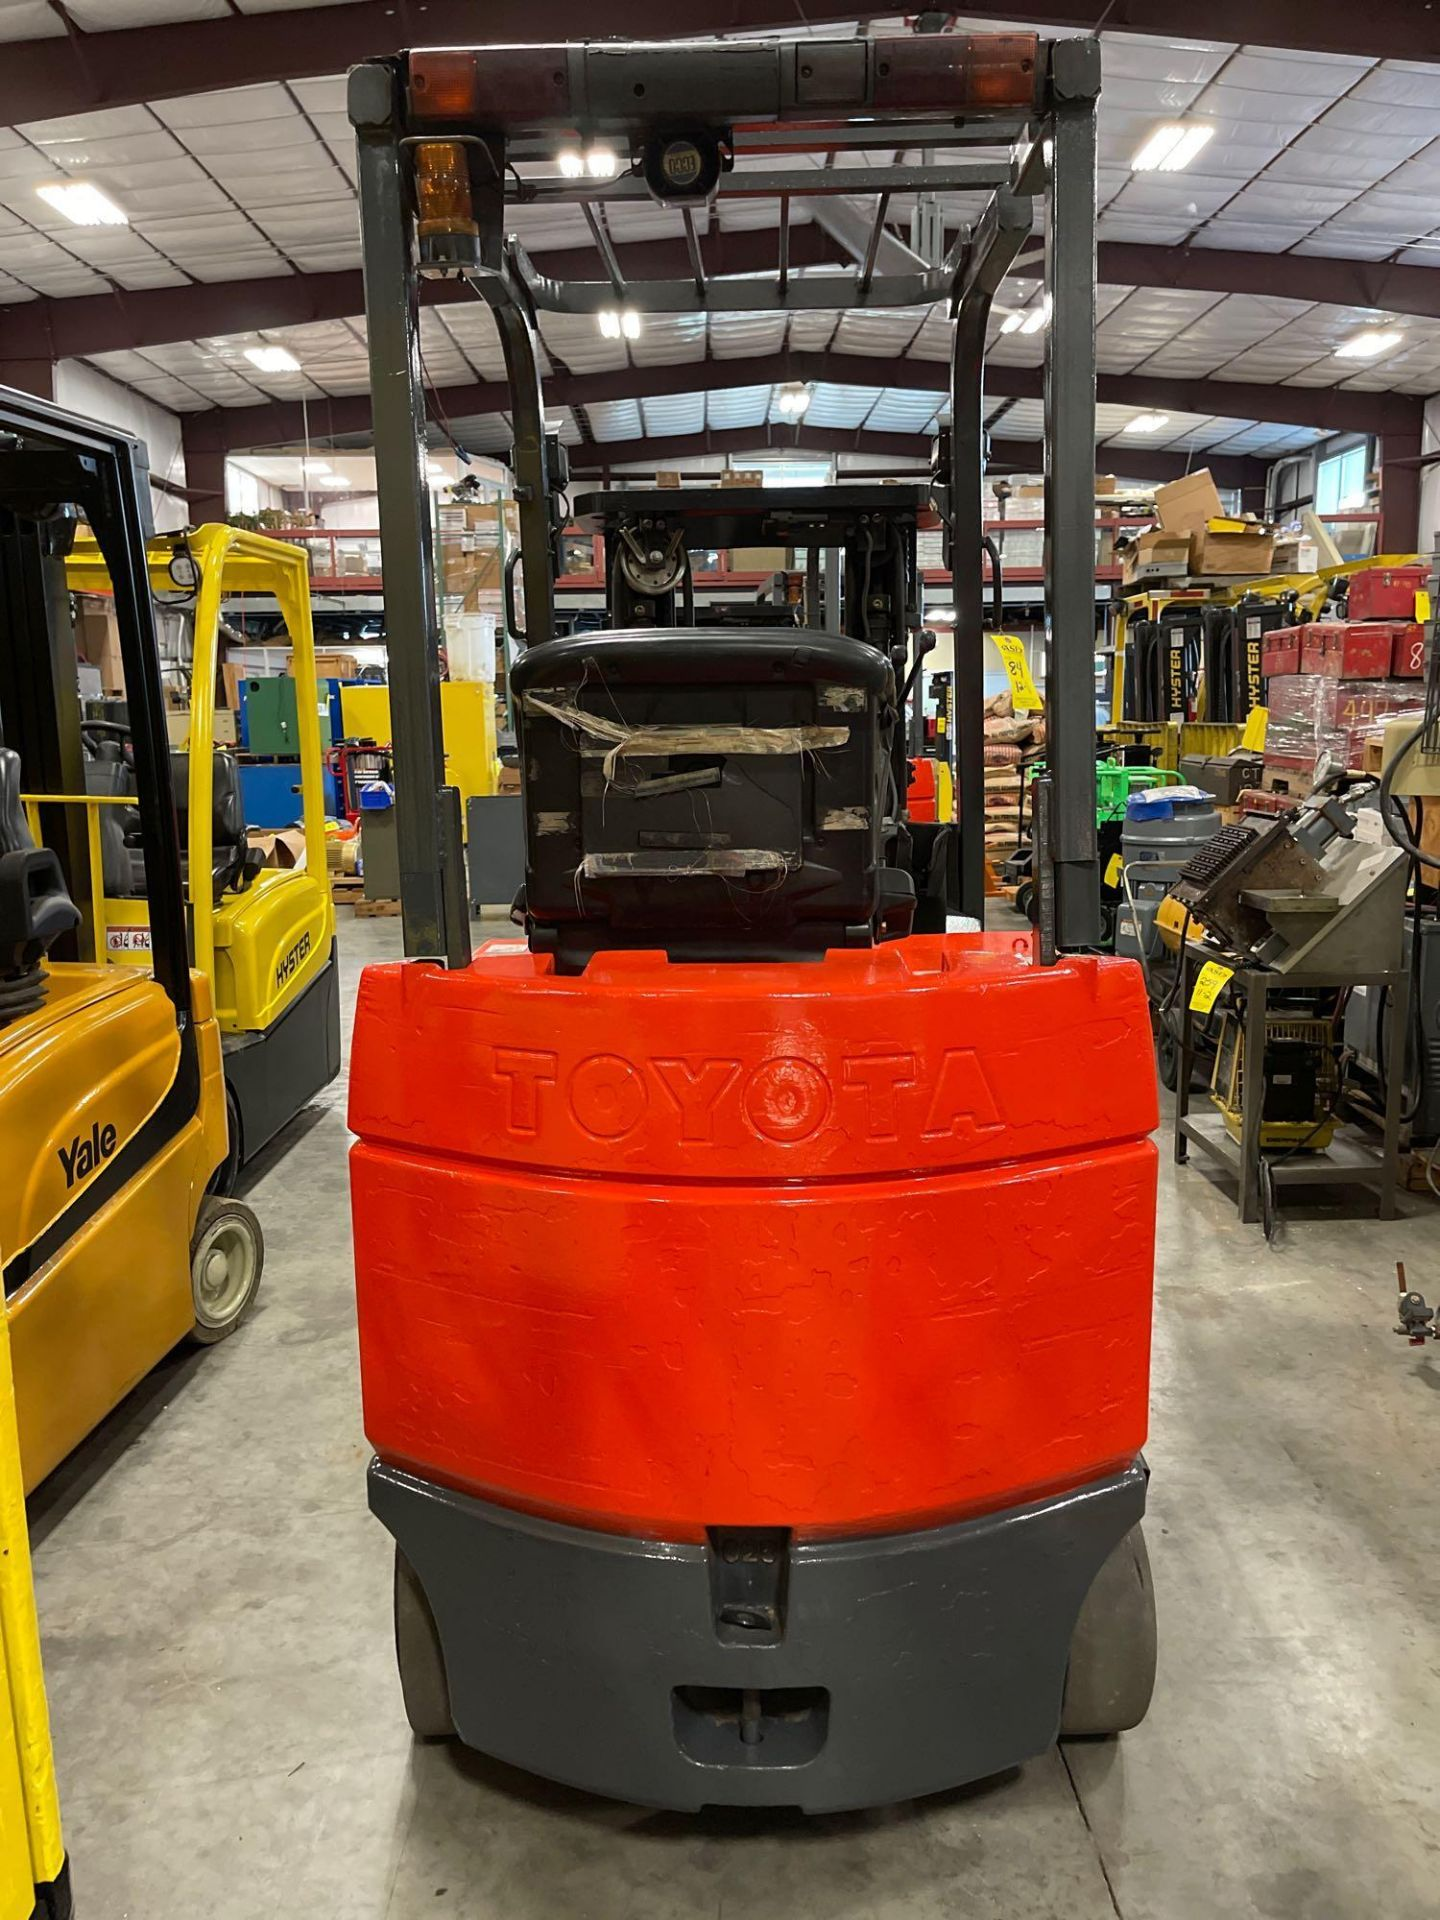 """TOYOTA 7FBCU25 ELECTRIC FORKLIFT, 5,000 LB CAPACITY, 170.5"""" HEIGHT CAPACITY - Image 9 of 18"""